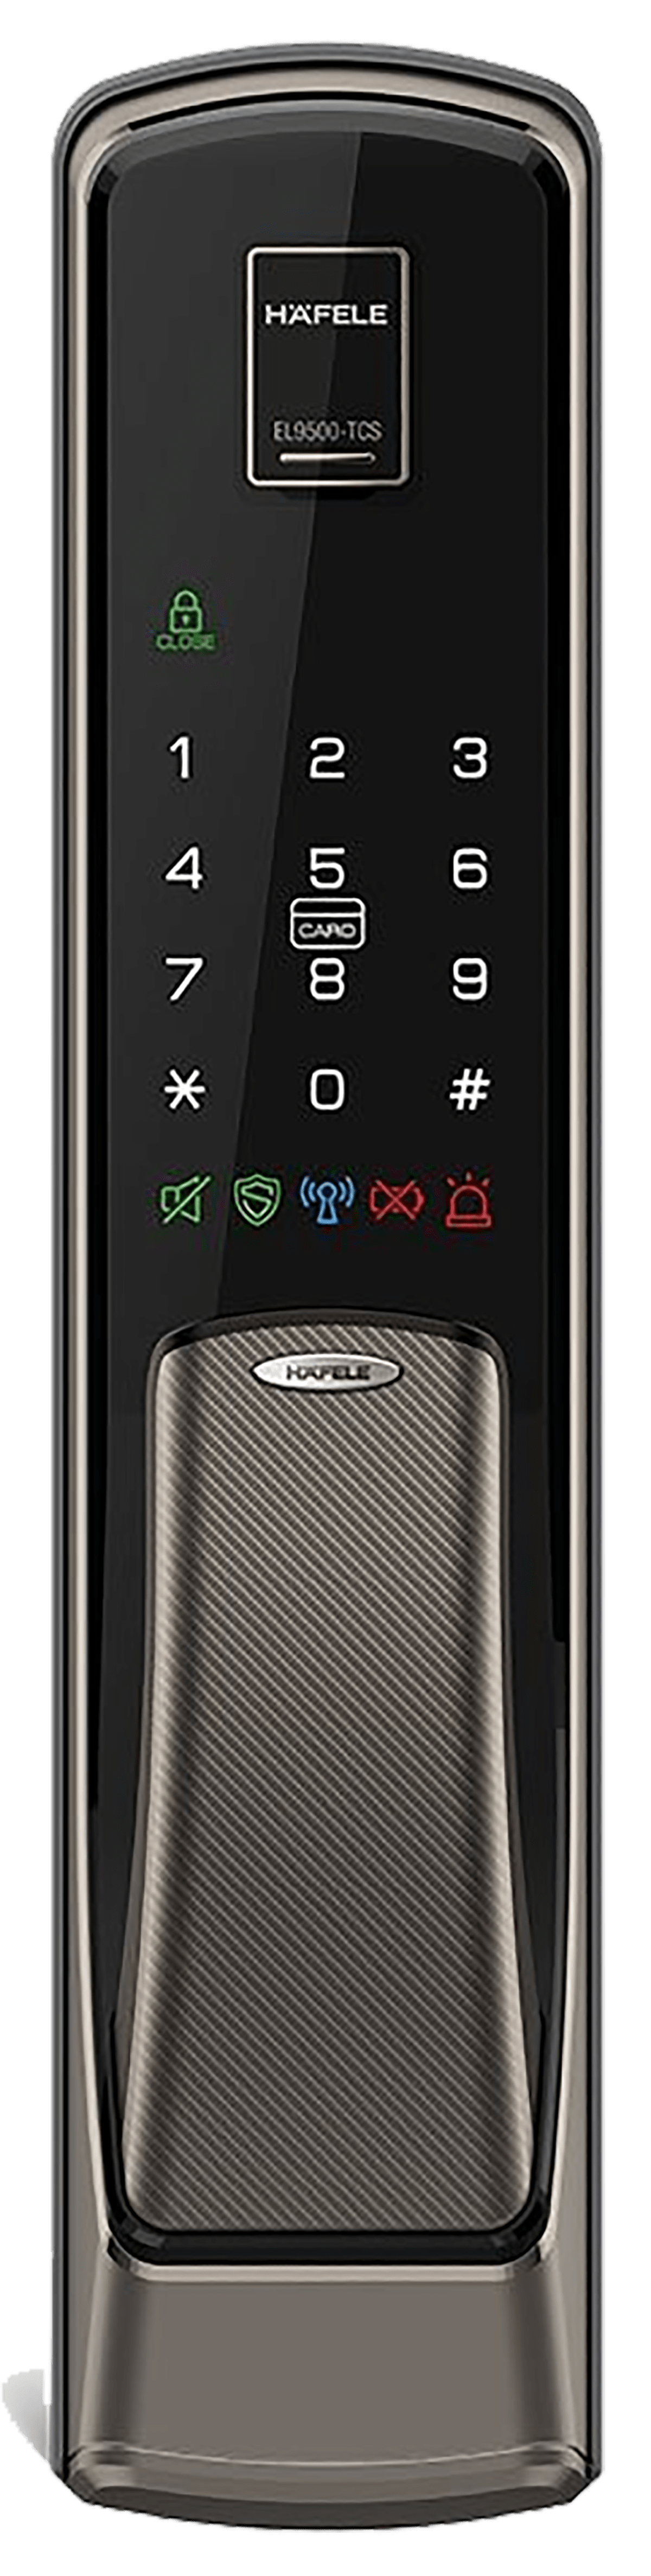 hafele digital lock singapore